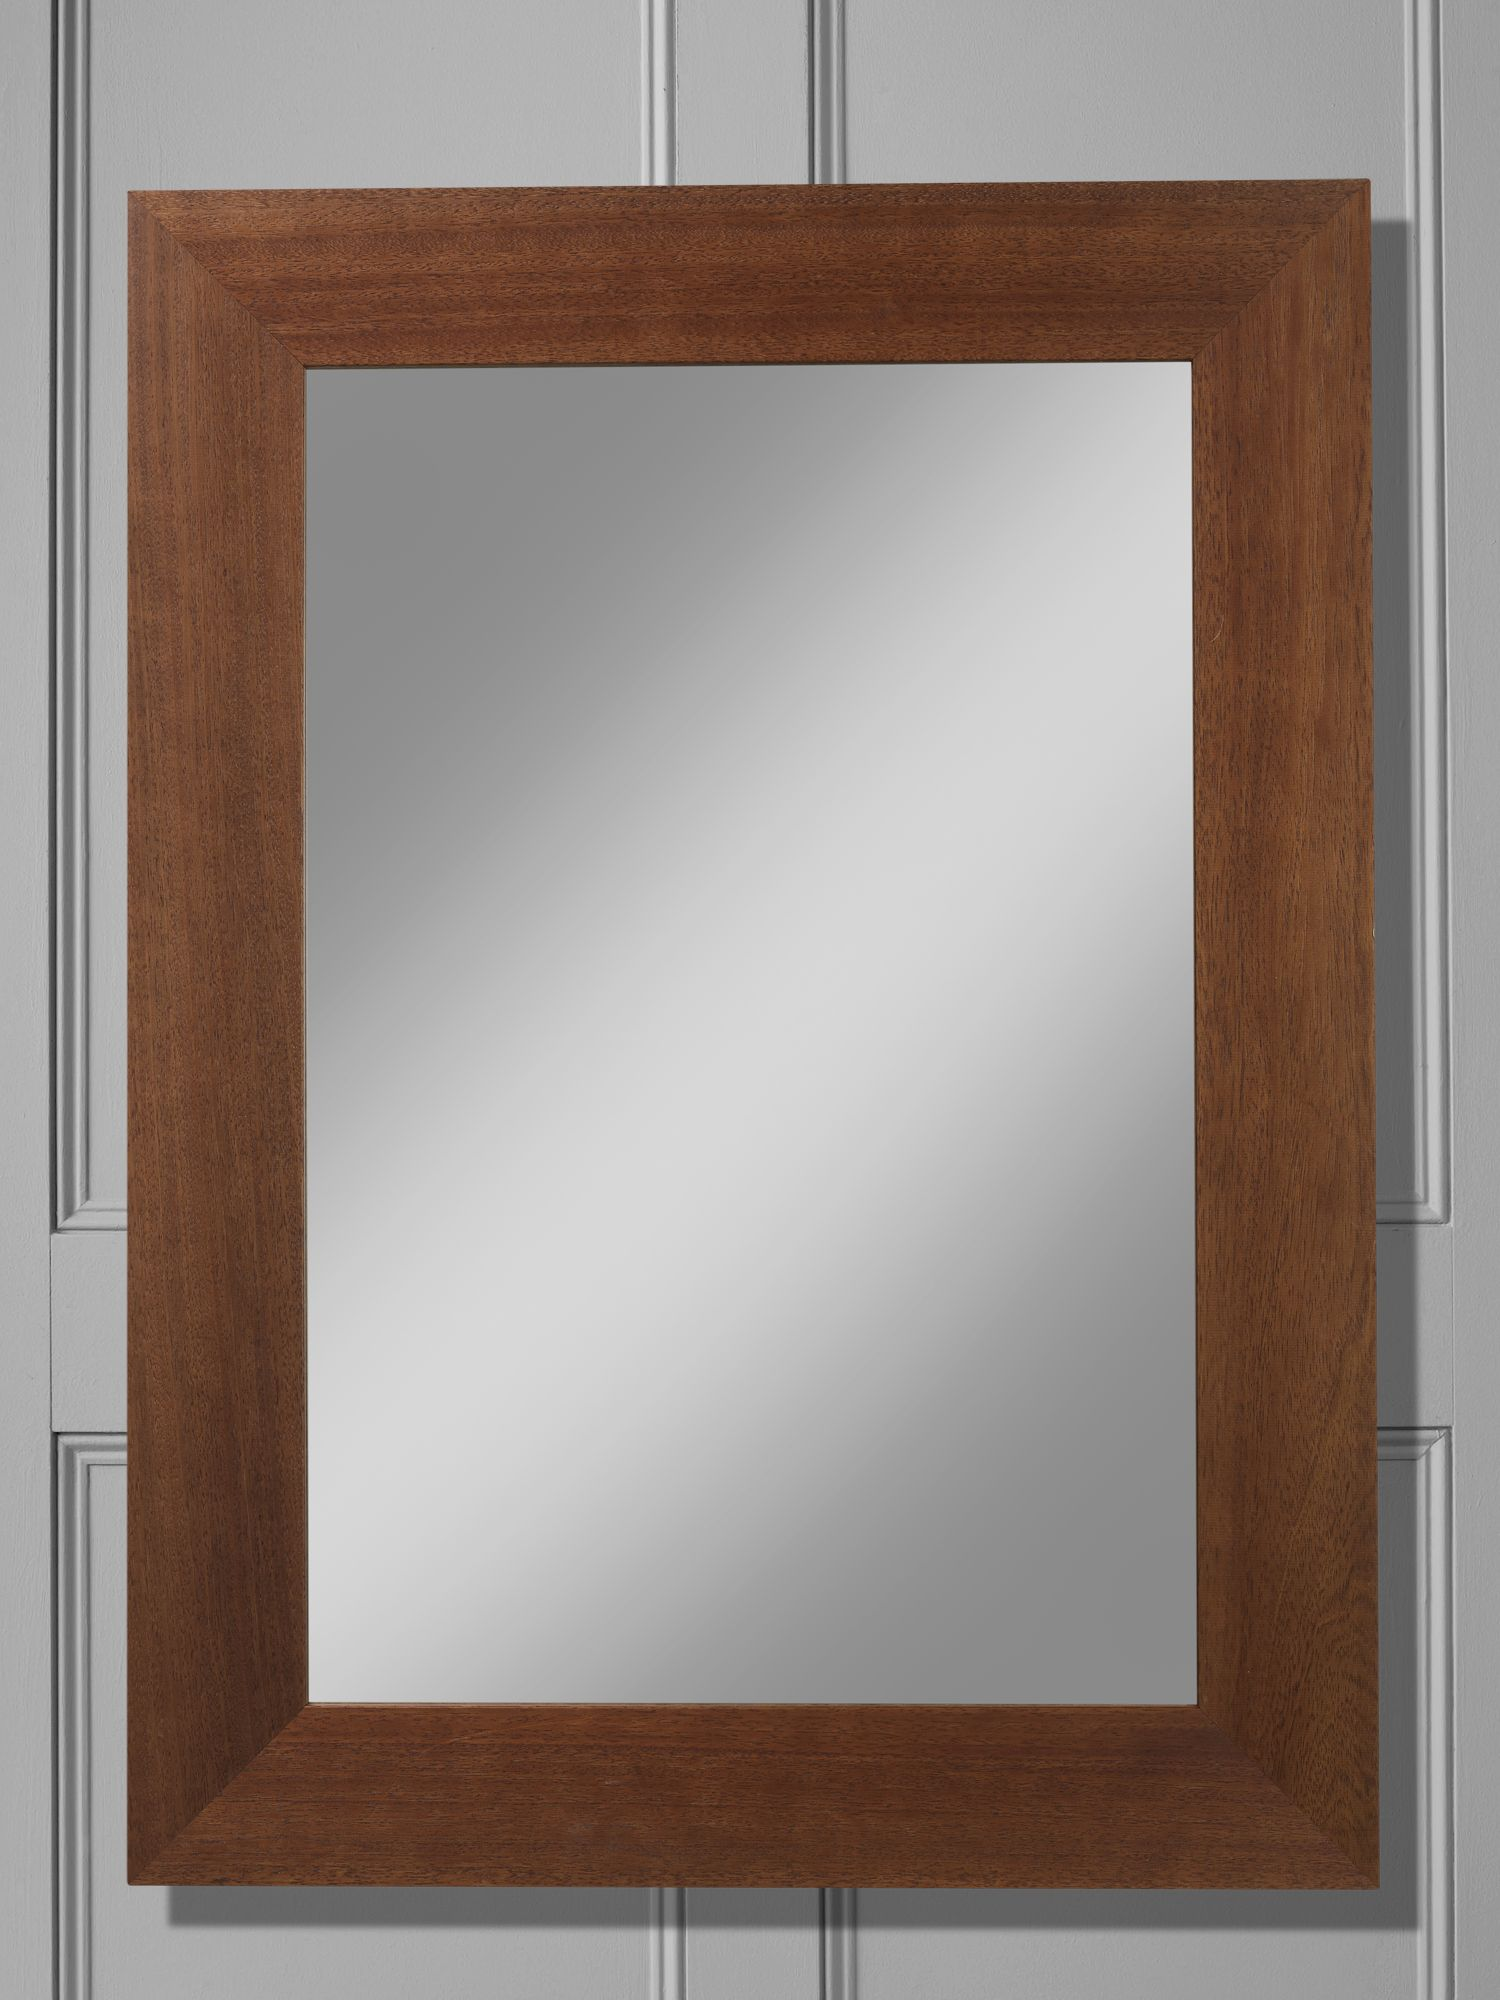 Henry wood large wall mirror 60cm X 90cm